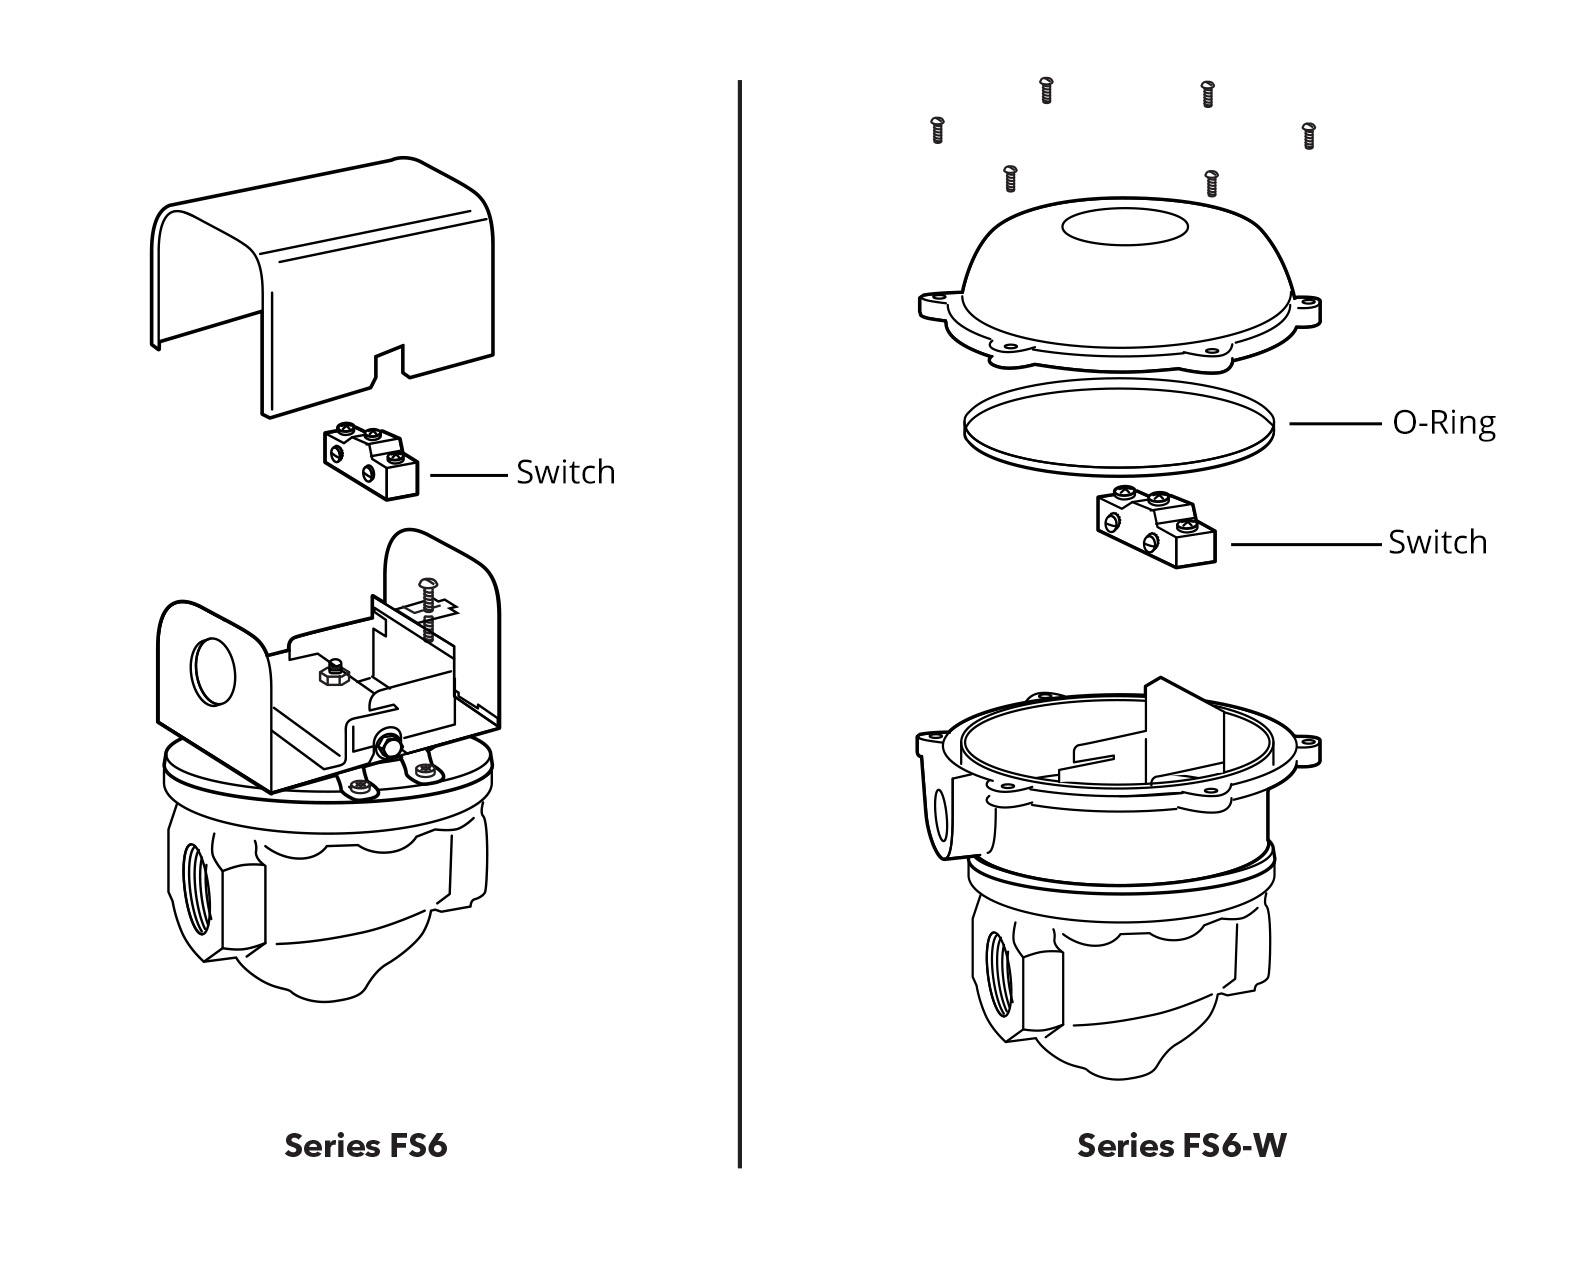 Mcdonnell Flow Switch Fs4-3 Instructions